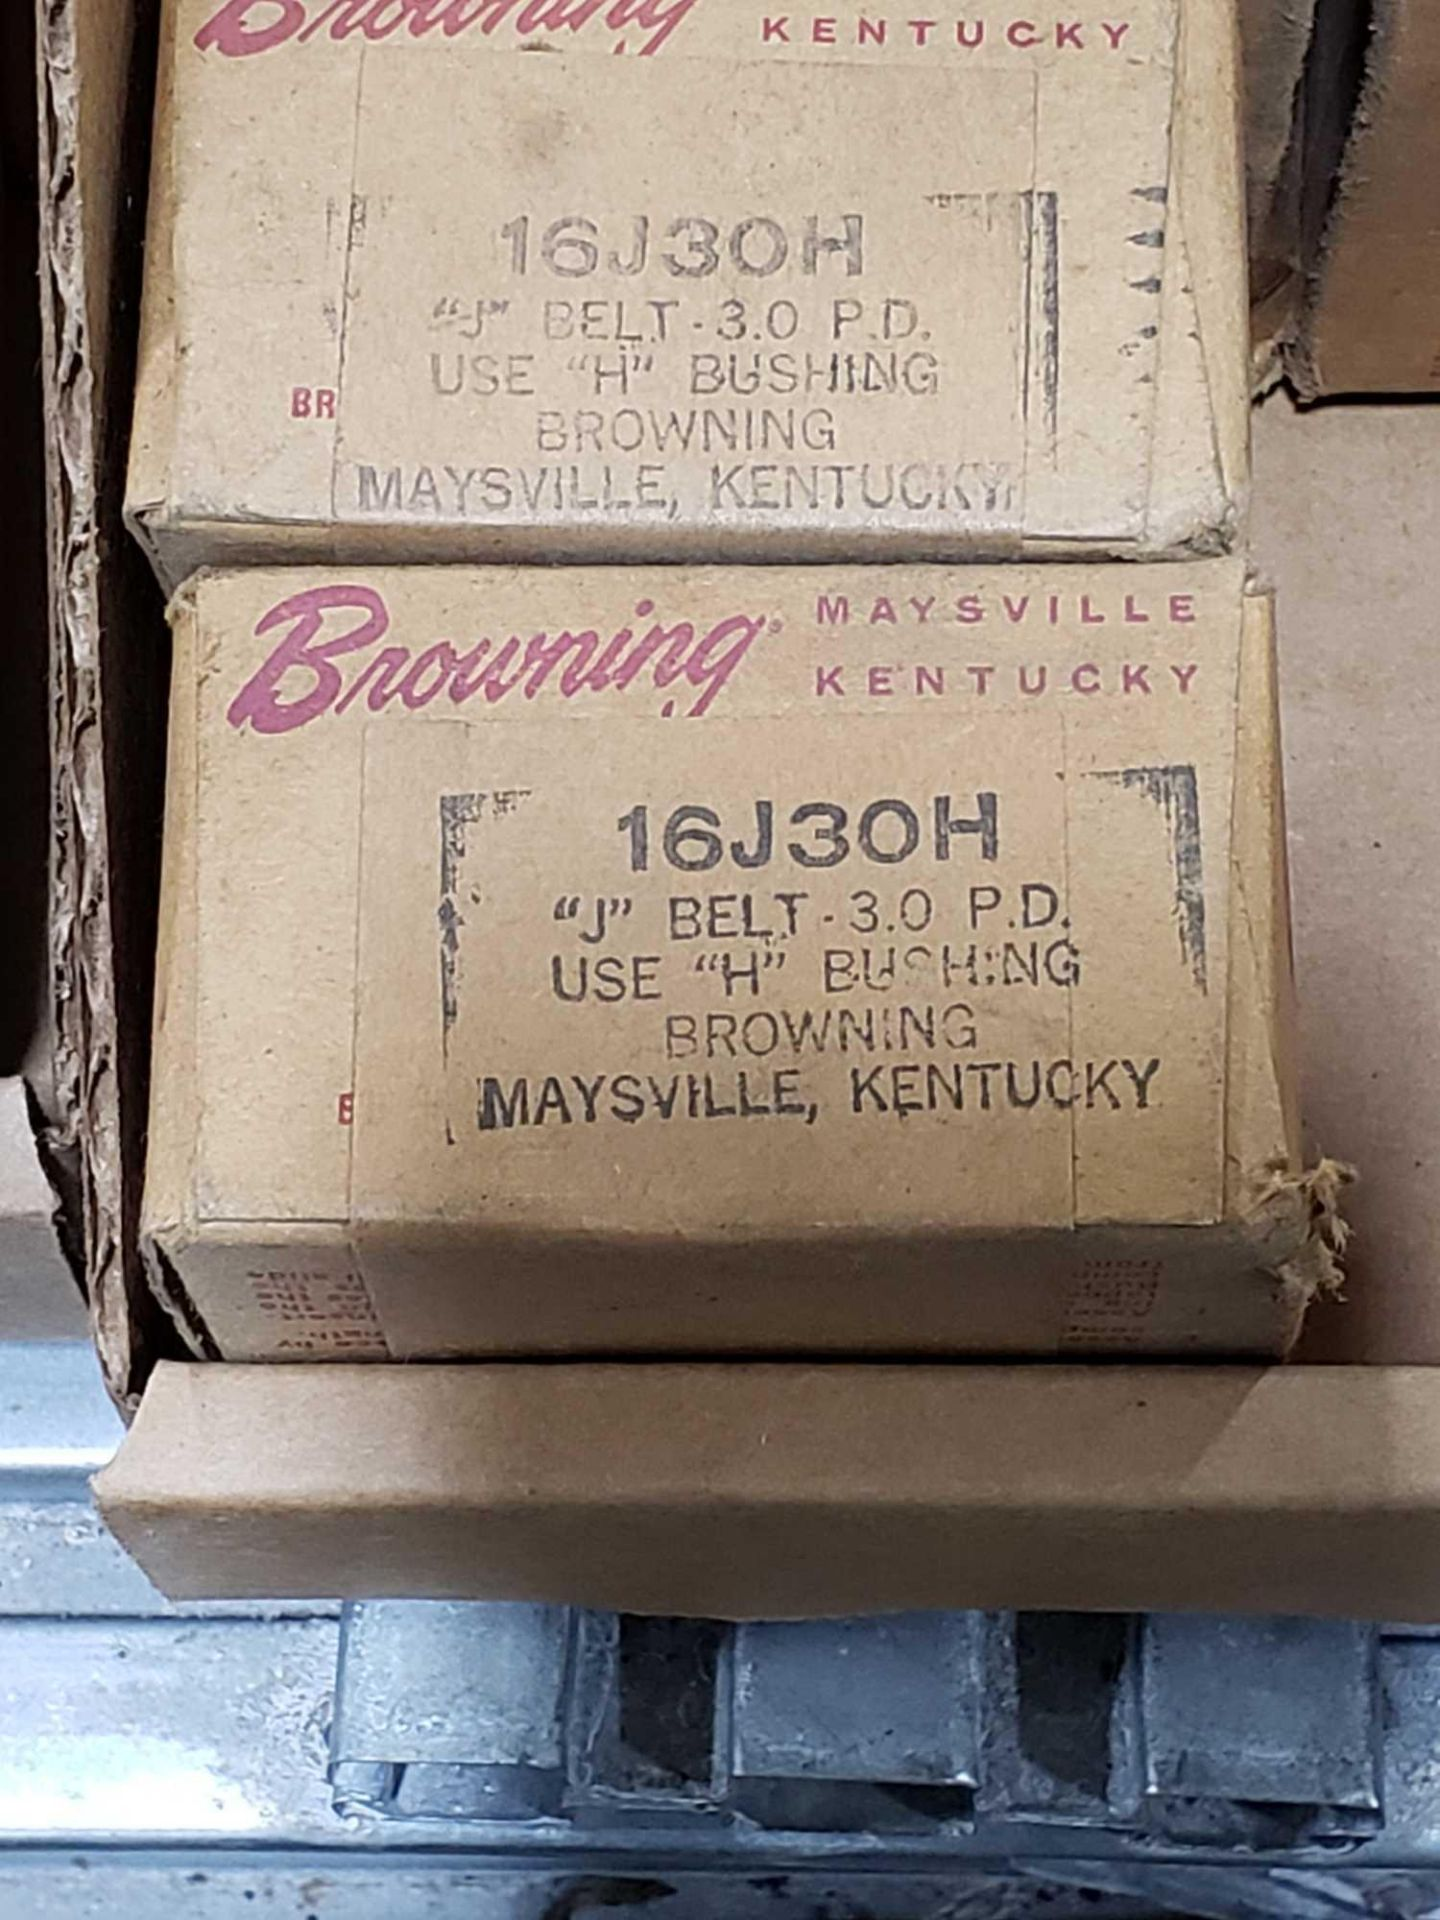 Lot 2 - Qty 6 - Browning part number 16J30H pulley. New in box.